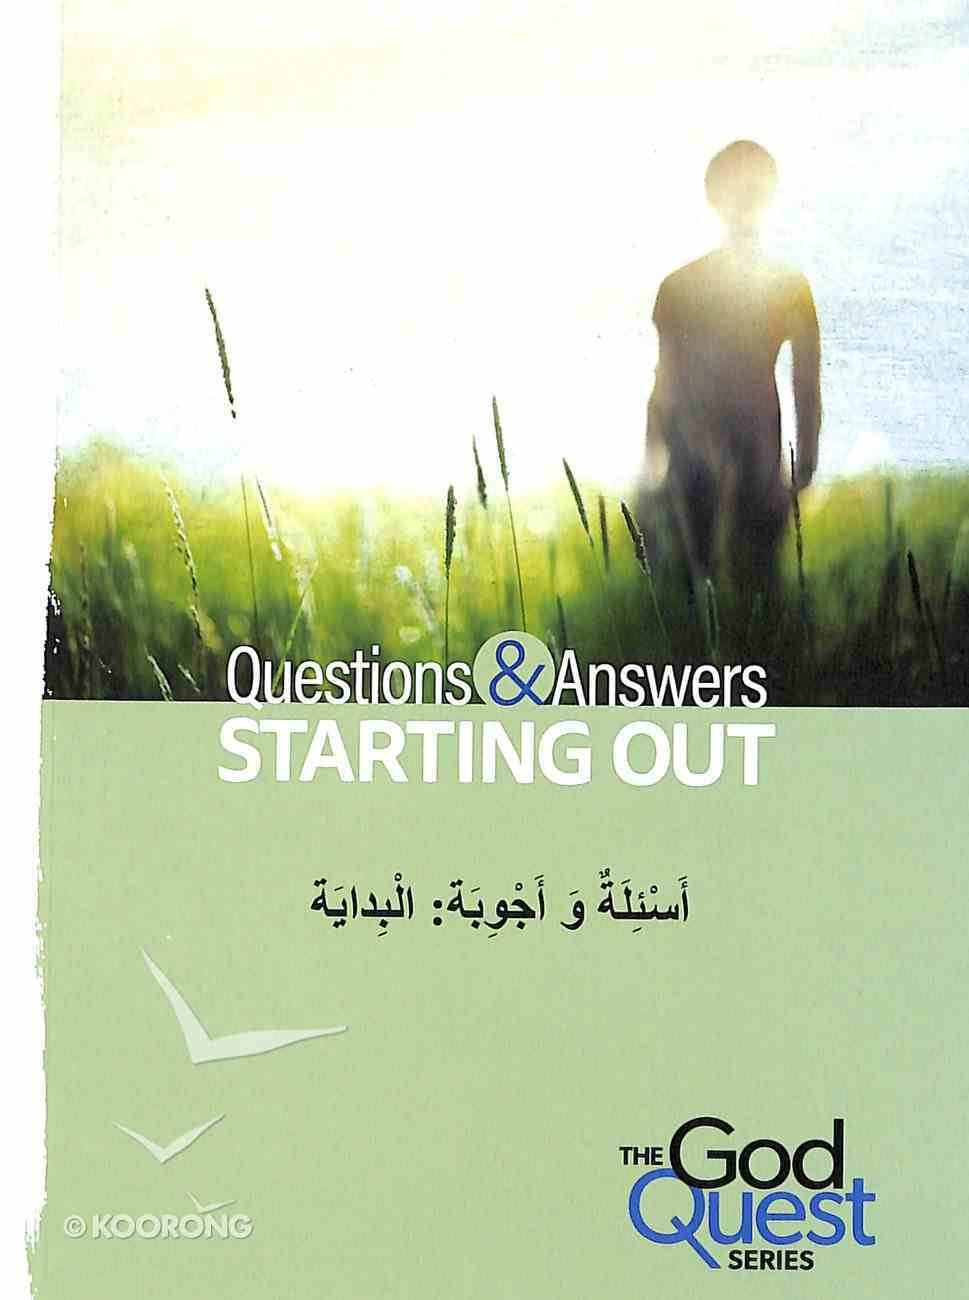 Arabic/English Q&A - Starting Out (#12 in The God Quest Series) Booklet